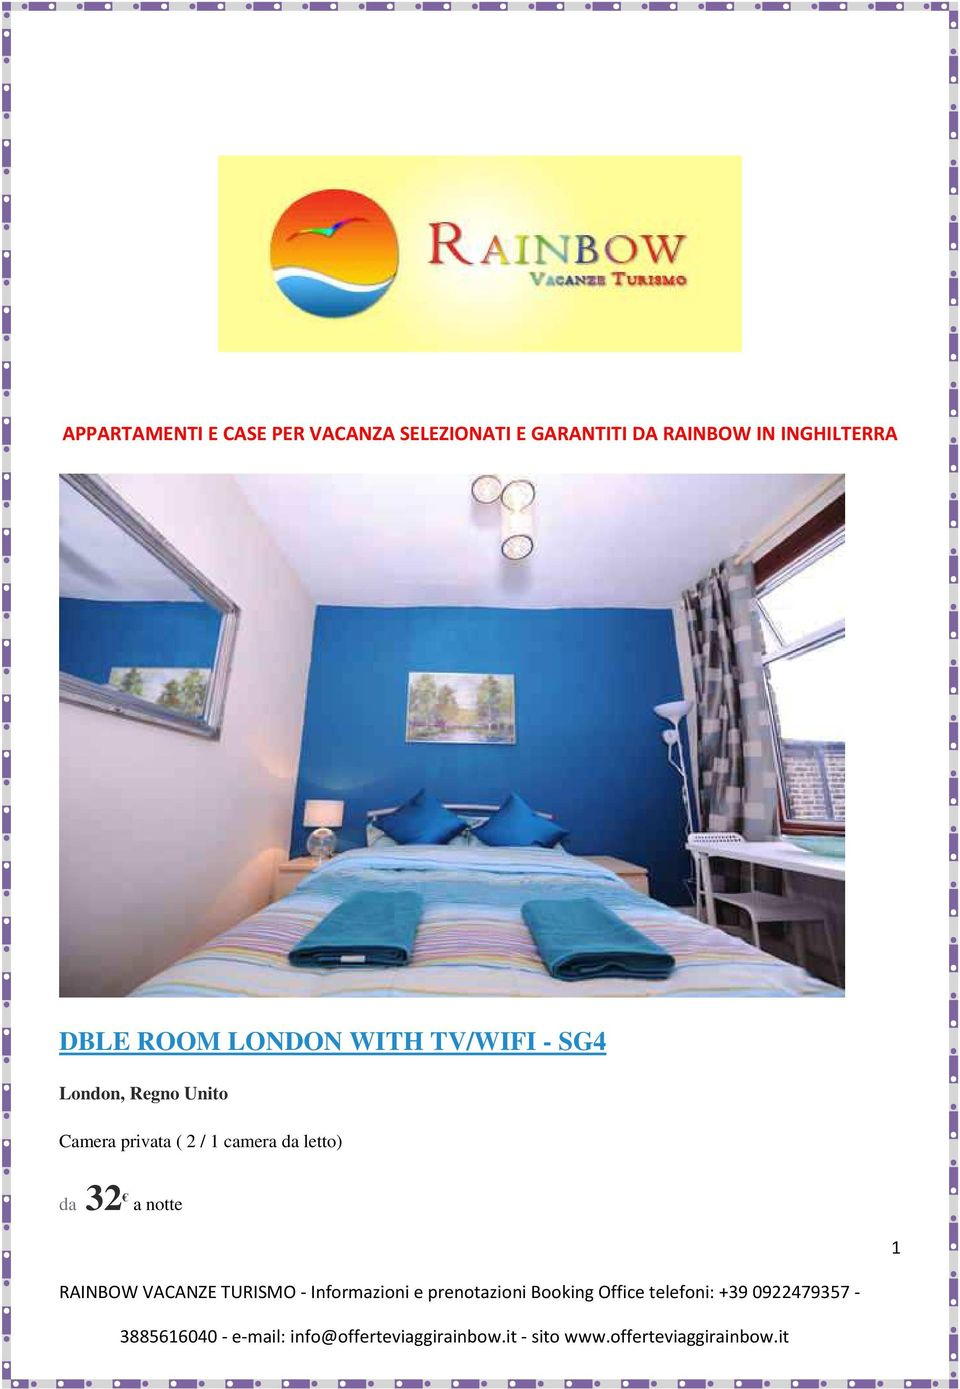 LONDON WITH TV/WIFI - SG4 London, Regno Unito